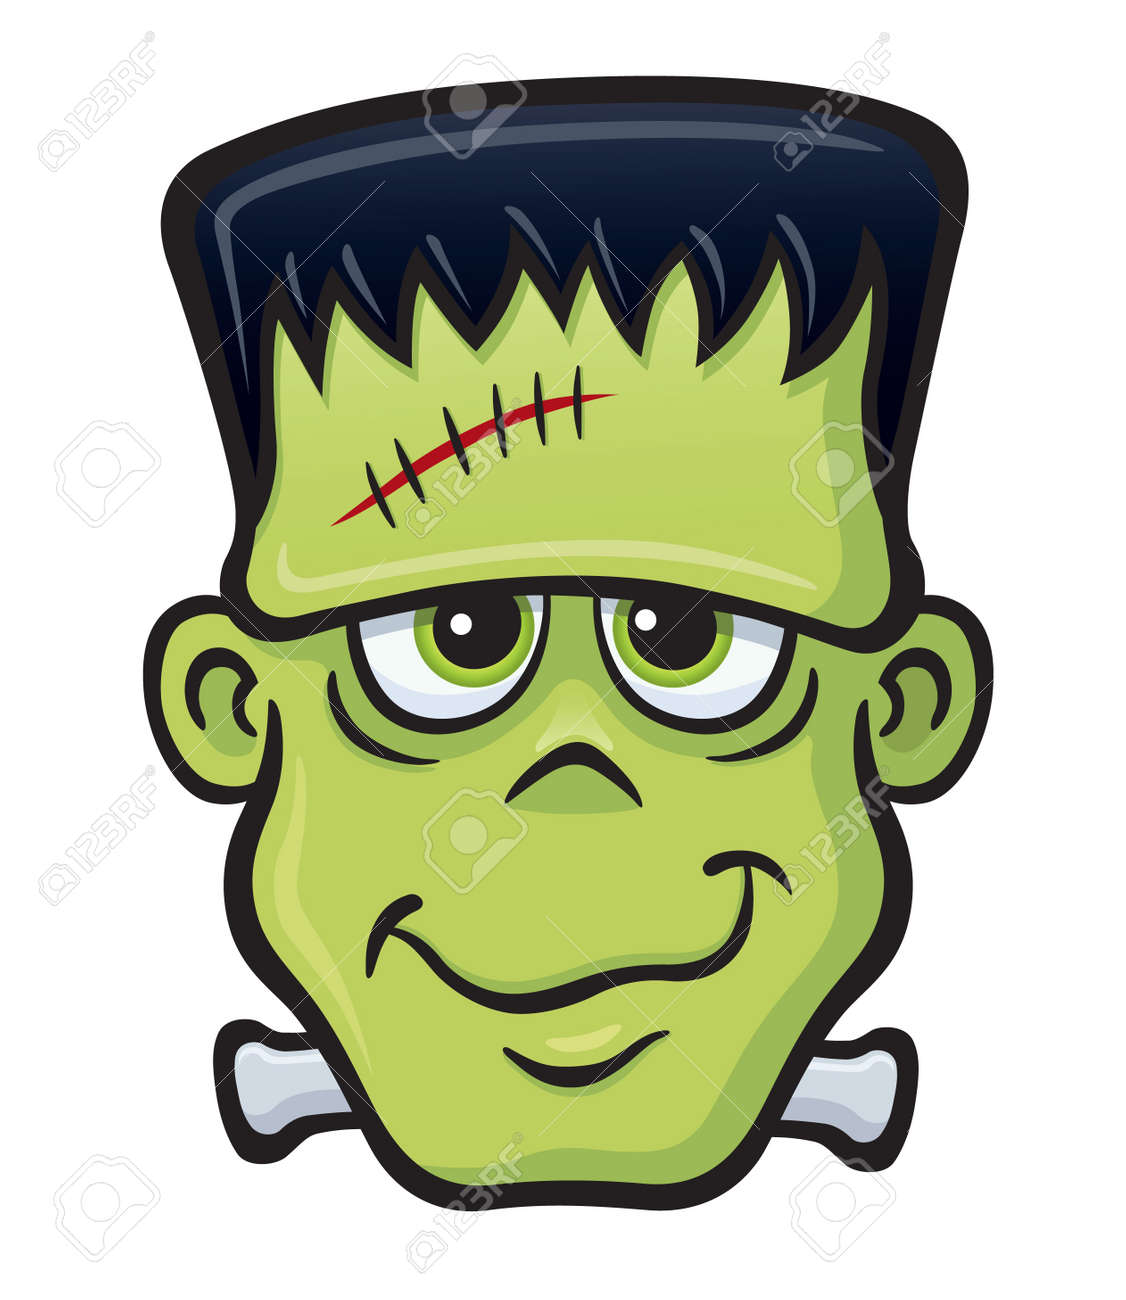 35034890-smiling-frankenstein-monster-fa